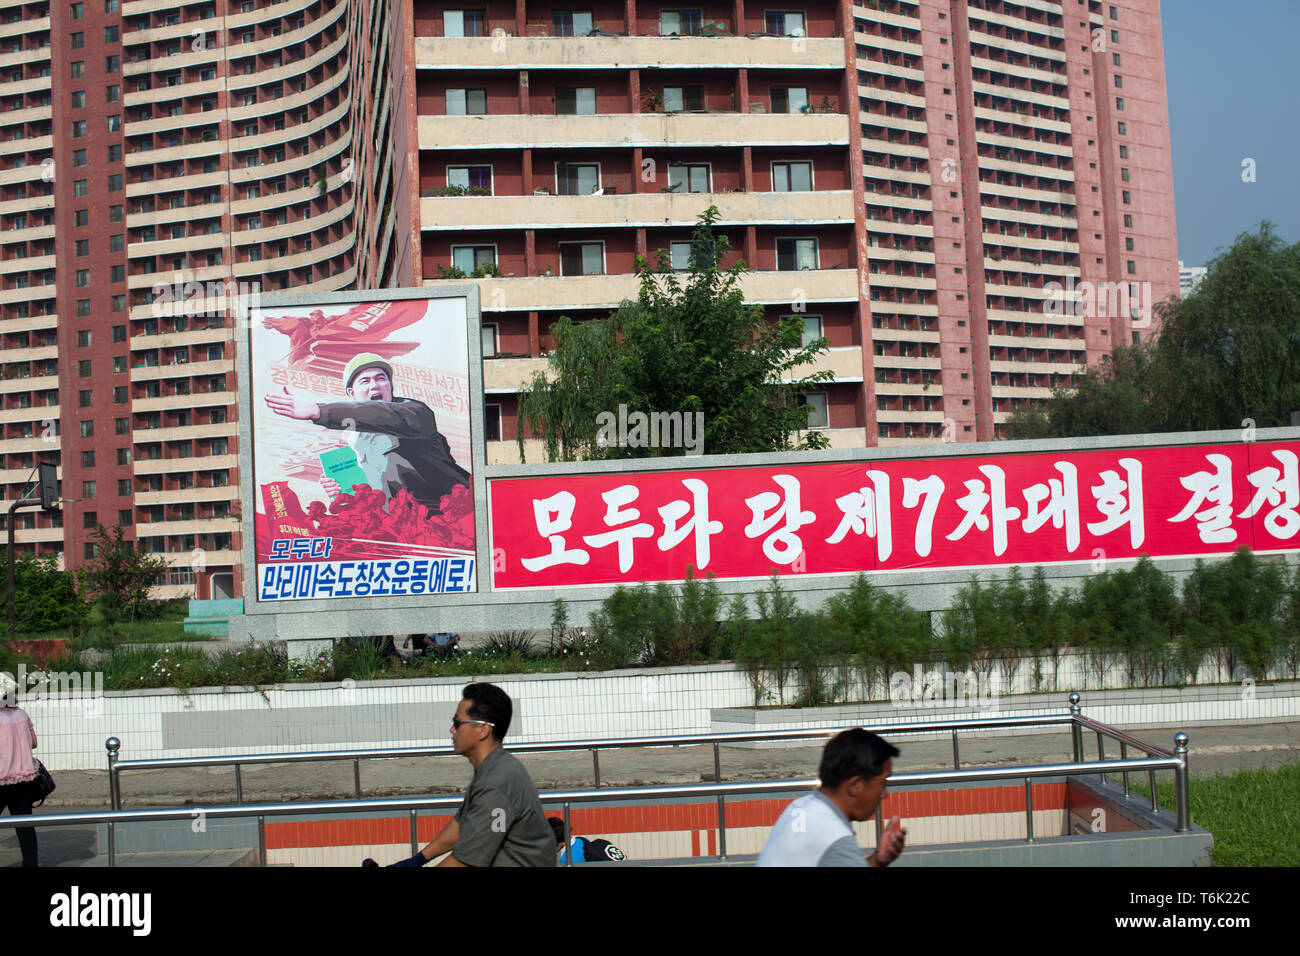 Part of the everyday scenery in socialist North Korea. There is no advertising in North Korea. Signs and posters across the country encourage patrioti - Stock Image